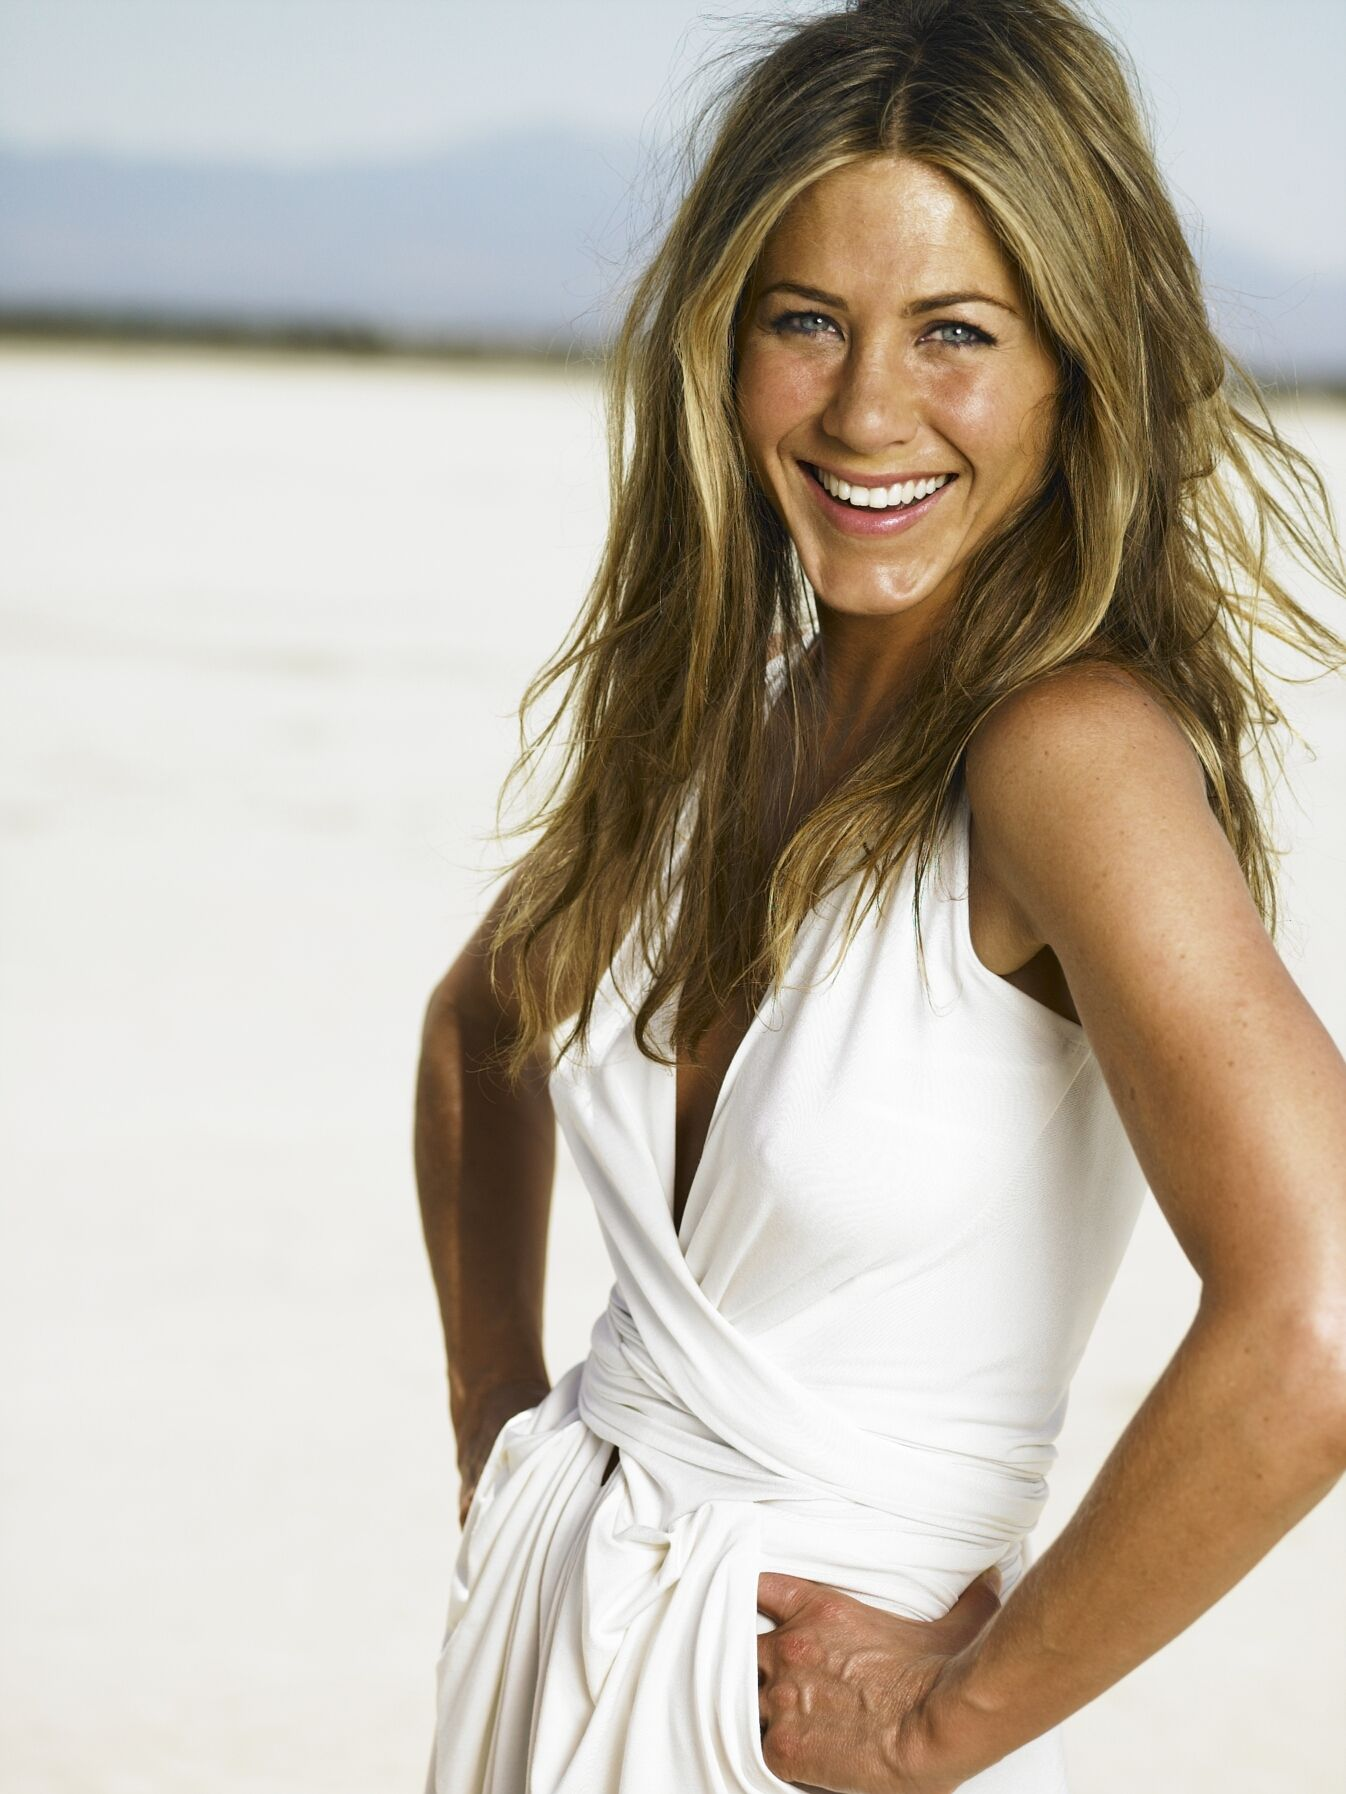 Jennifer Aniston Images Icons Wallpapers And Photos On Fanpop Jennifer Aniston Style Jennifer Aniston Pictures Jennifer Aniston Hot